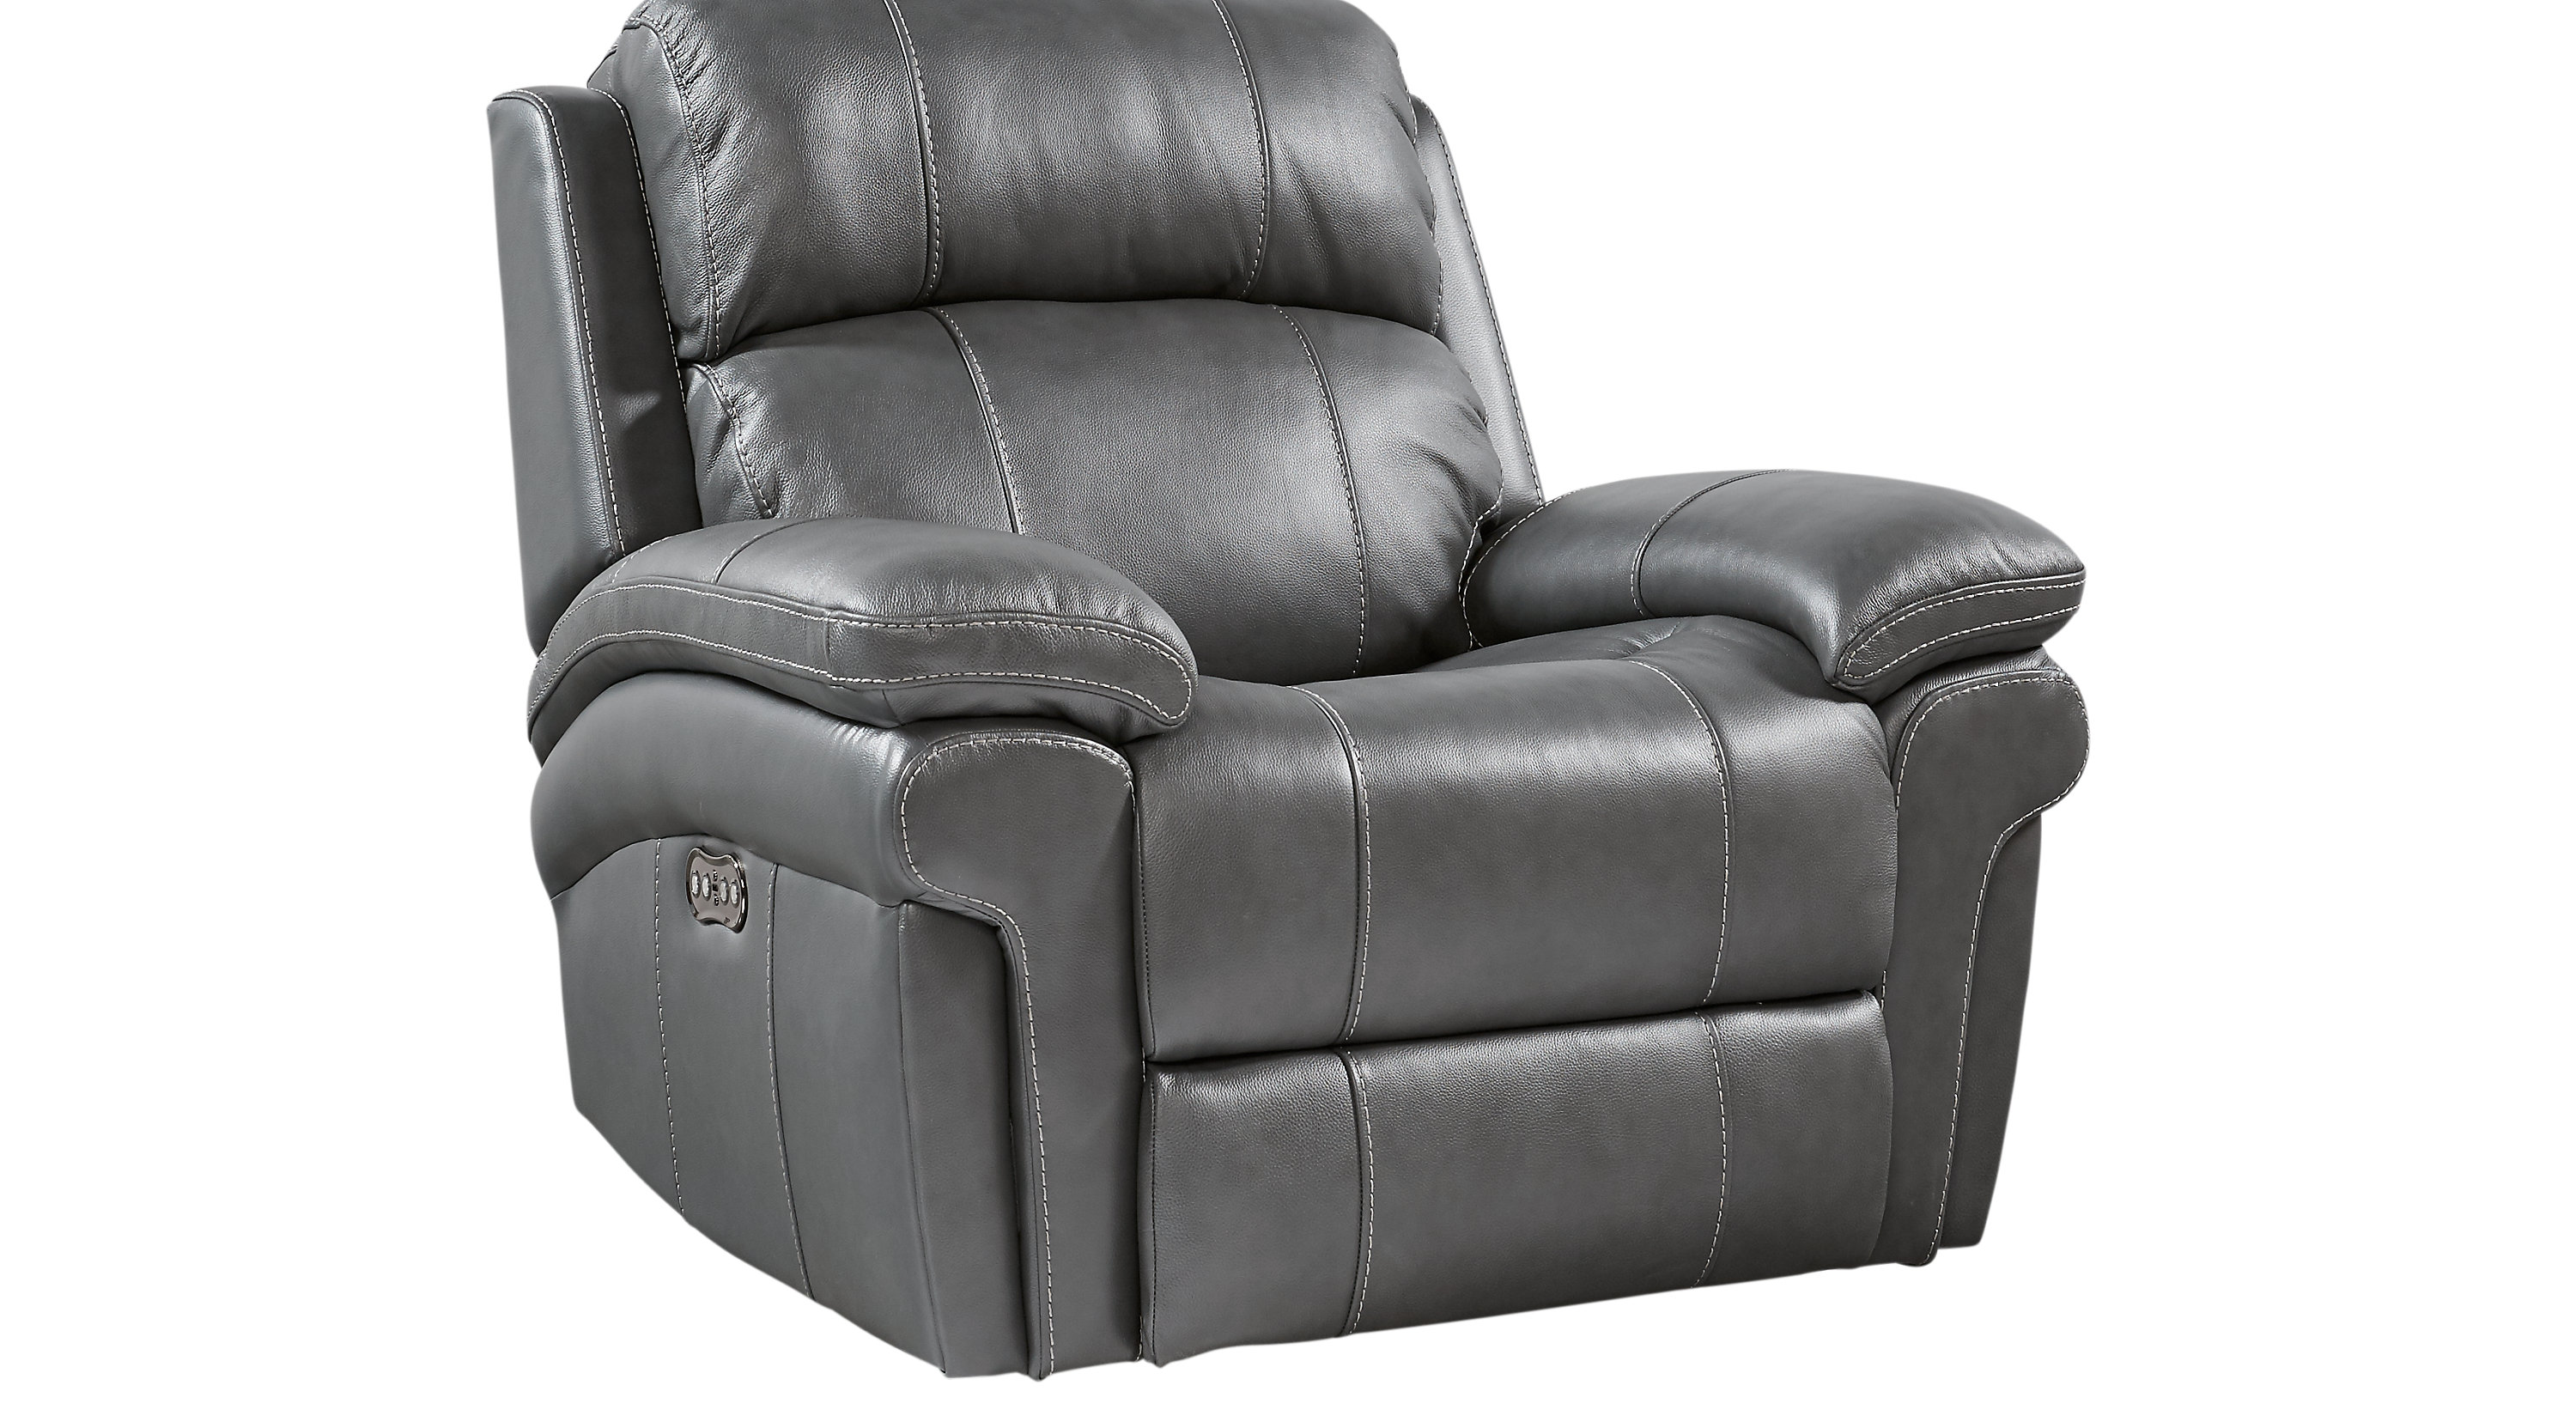 $799.99 - Trevino Smoke Leather Power Recliner - Reclining